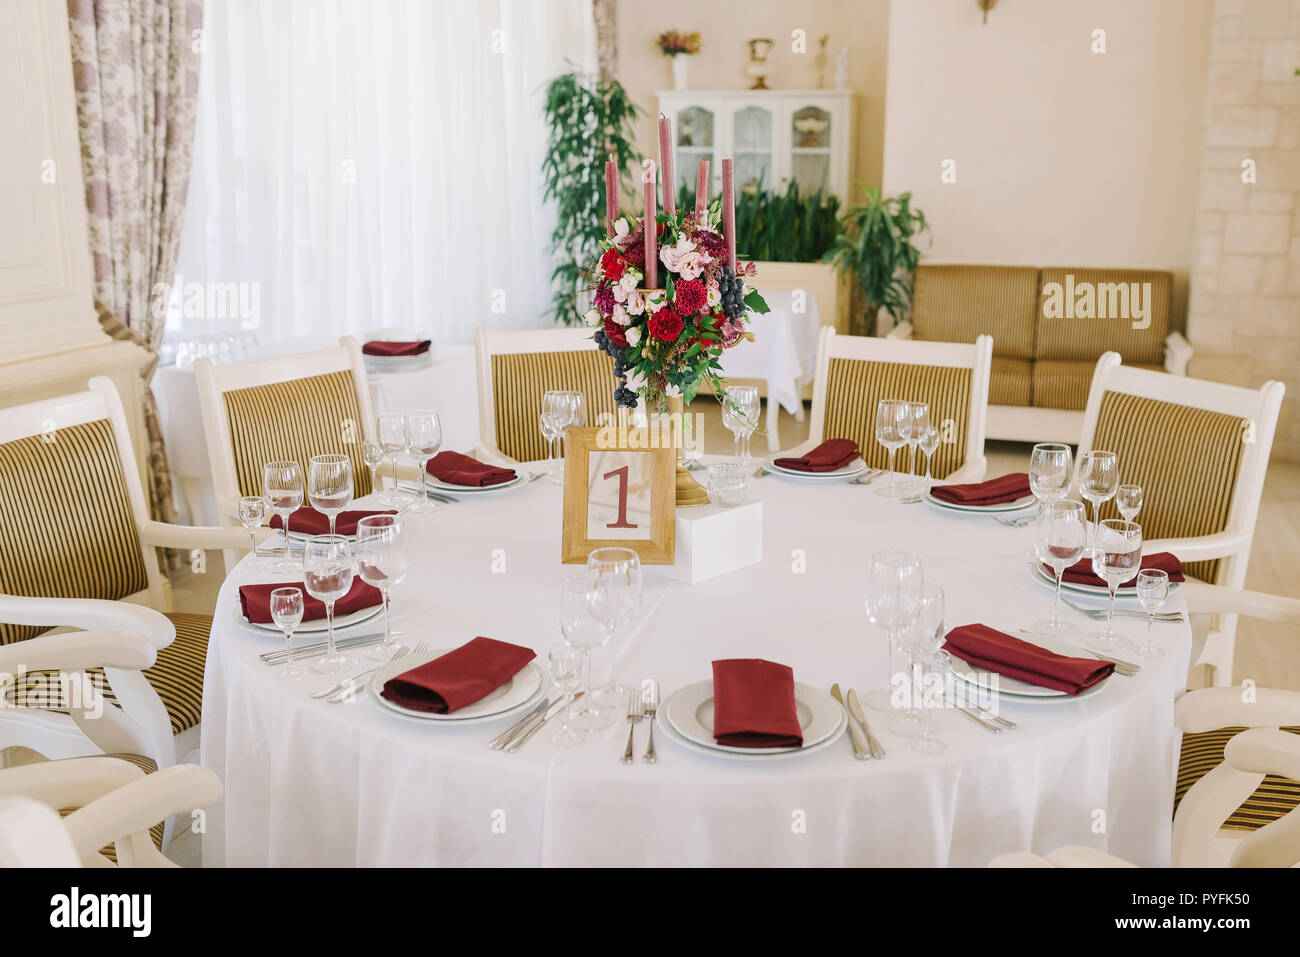 Lunch table for guests at a wedding - Stock Image